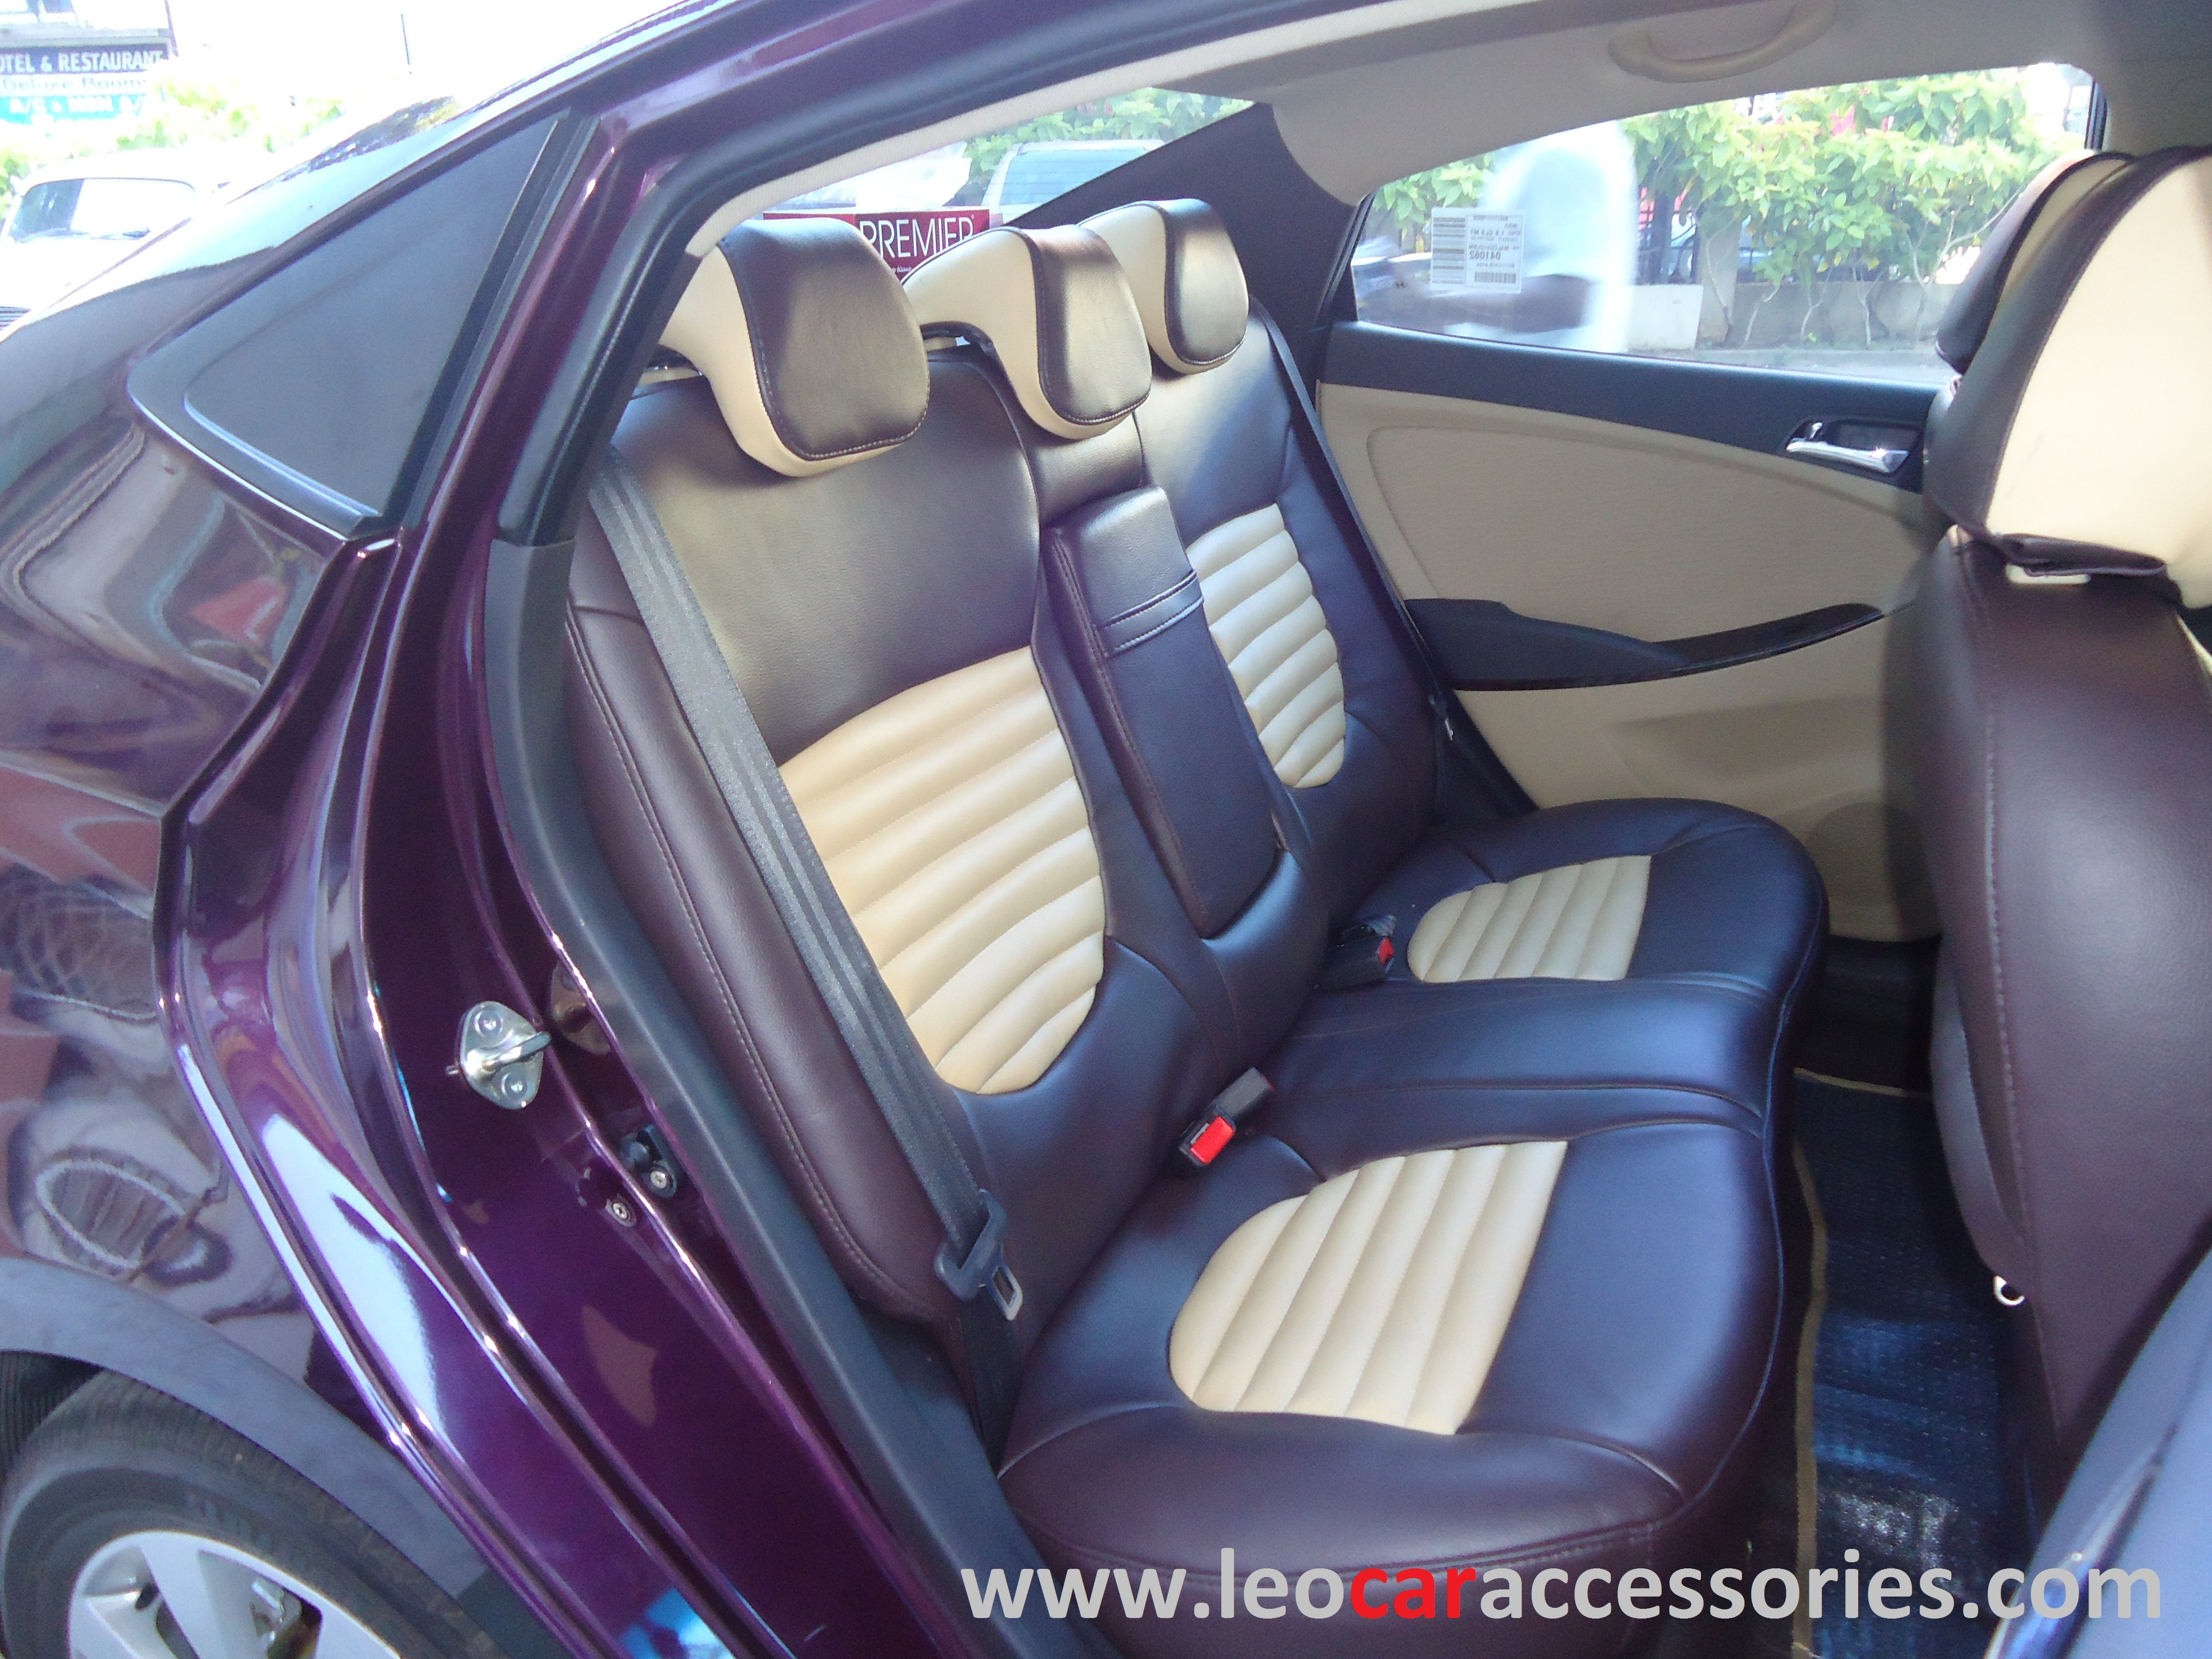 Hyundai Creta Custom Fit Car Seat Cover From FEATHER At LEO Accessories